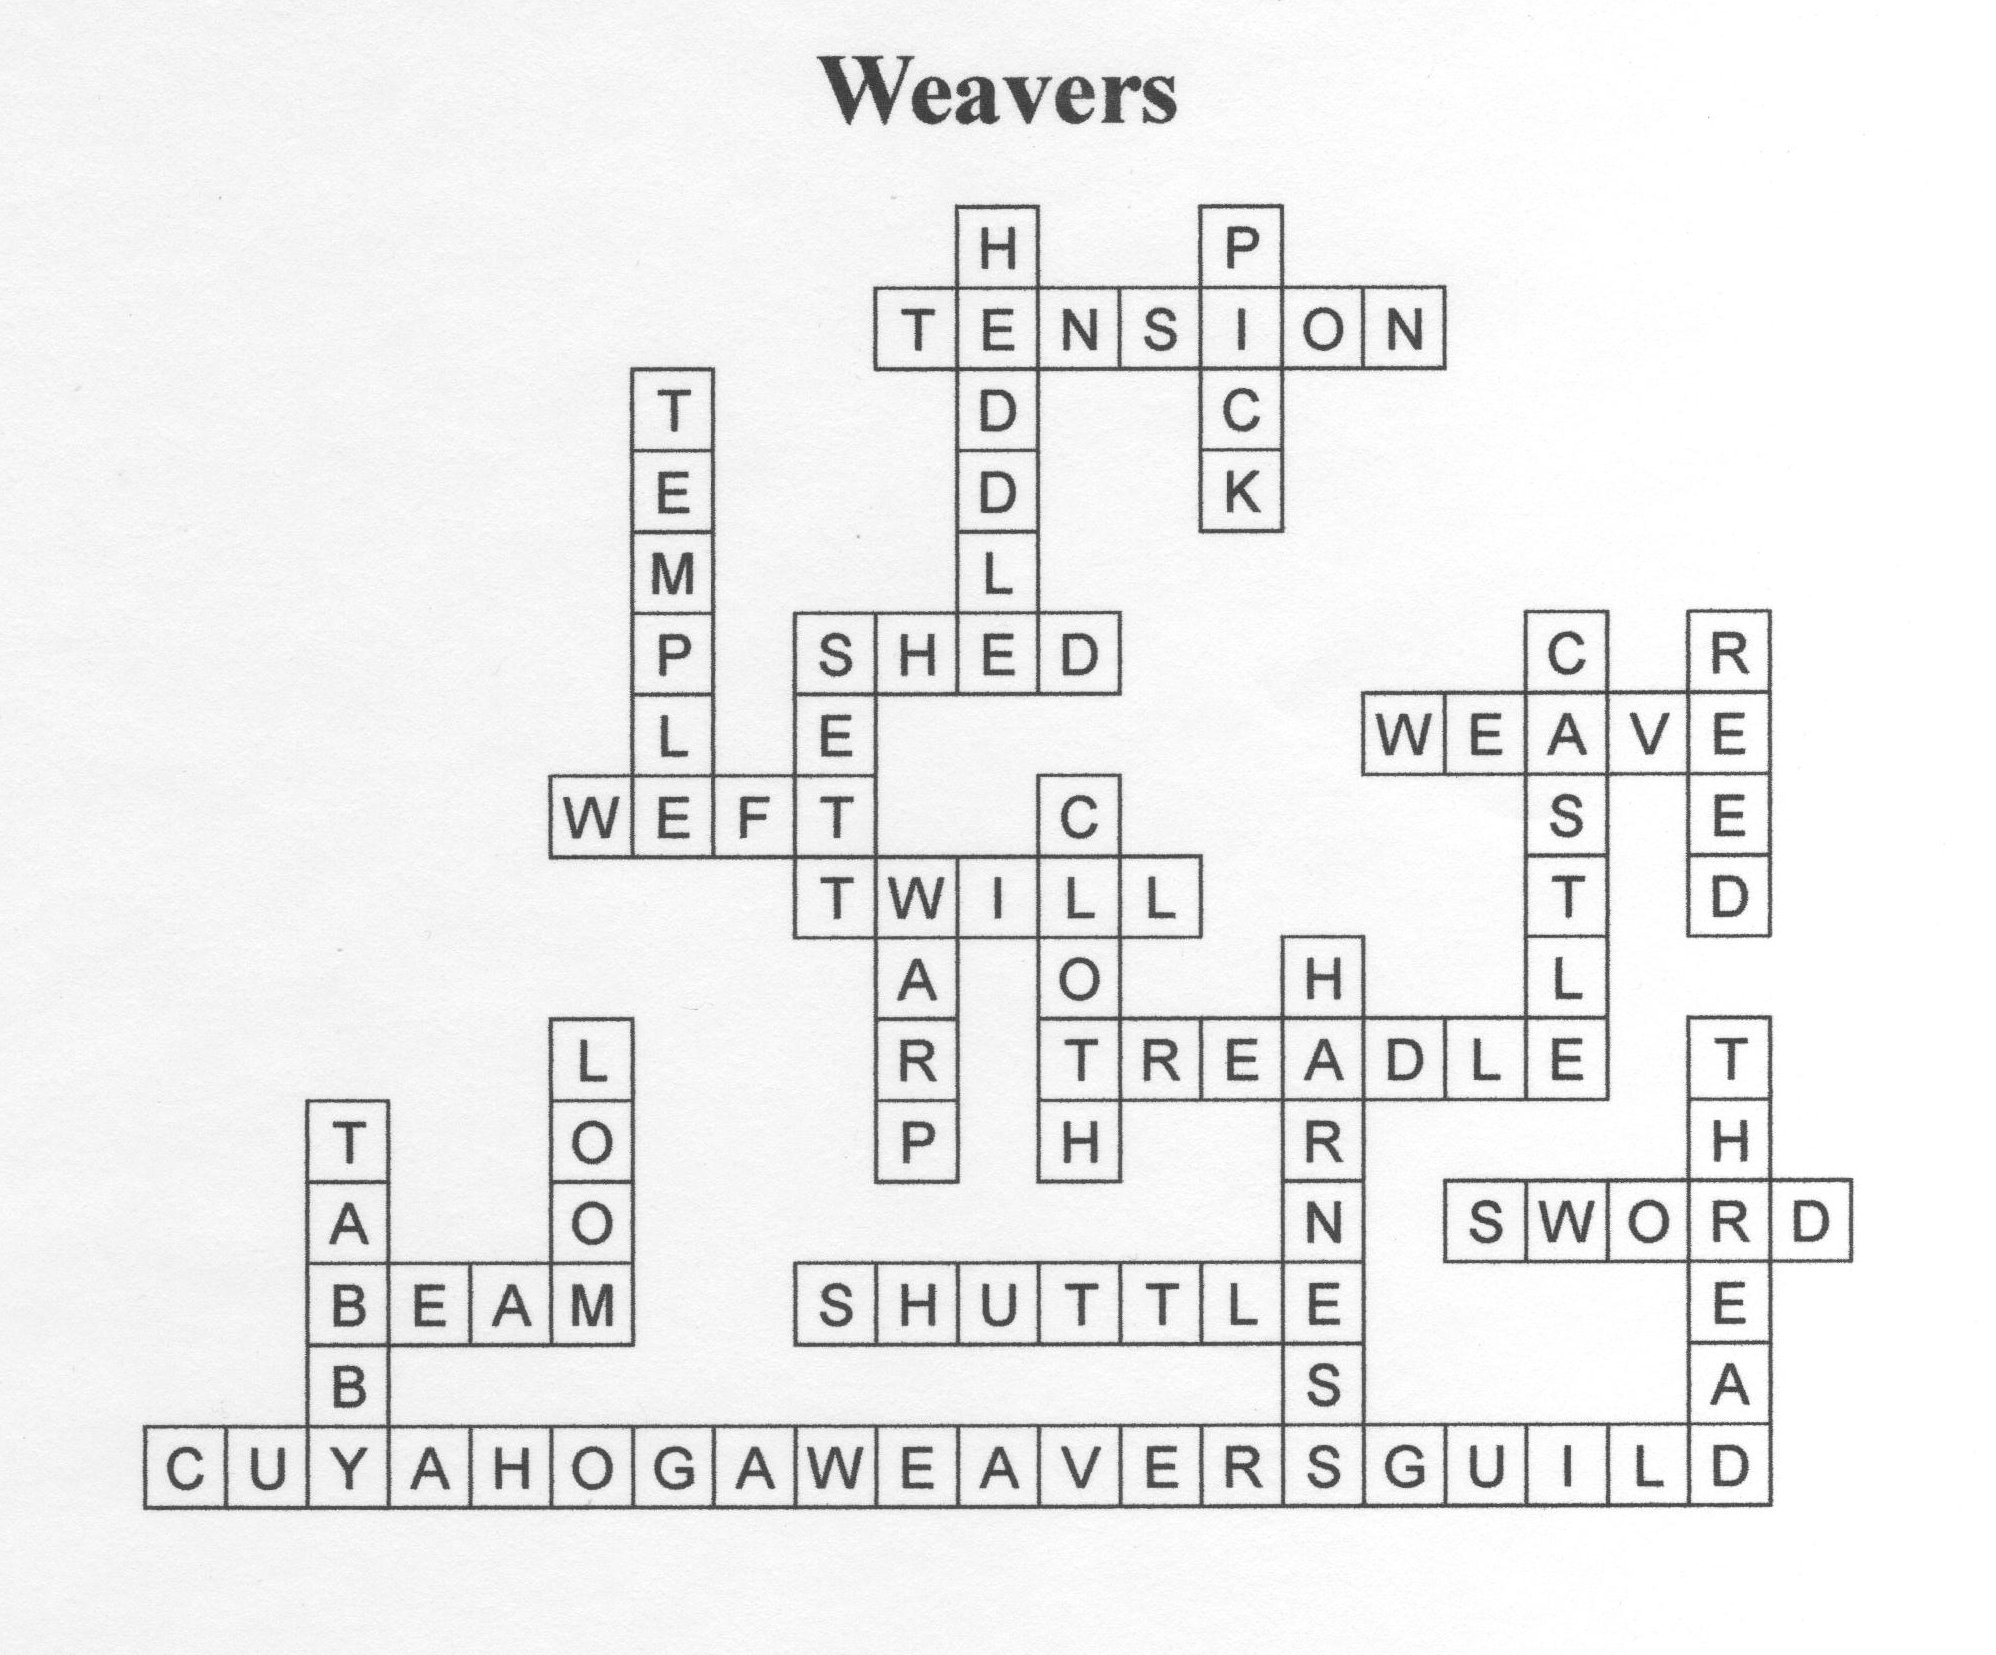 Crossword puzzle answers - Cuyahoga Weavers Guild